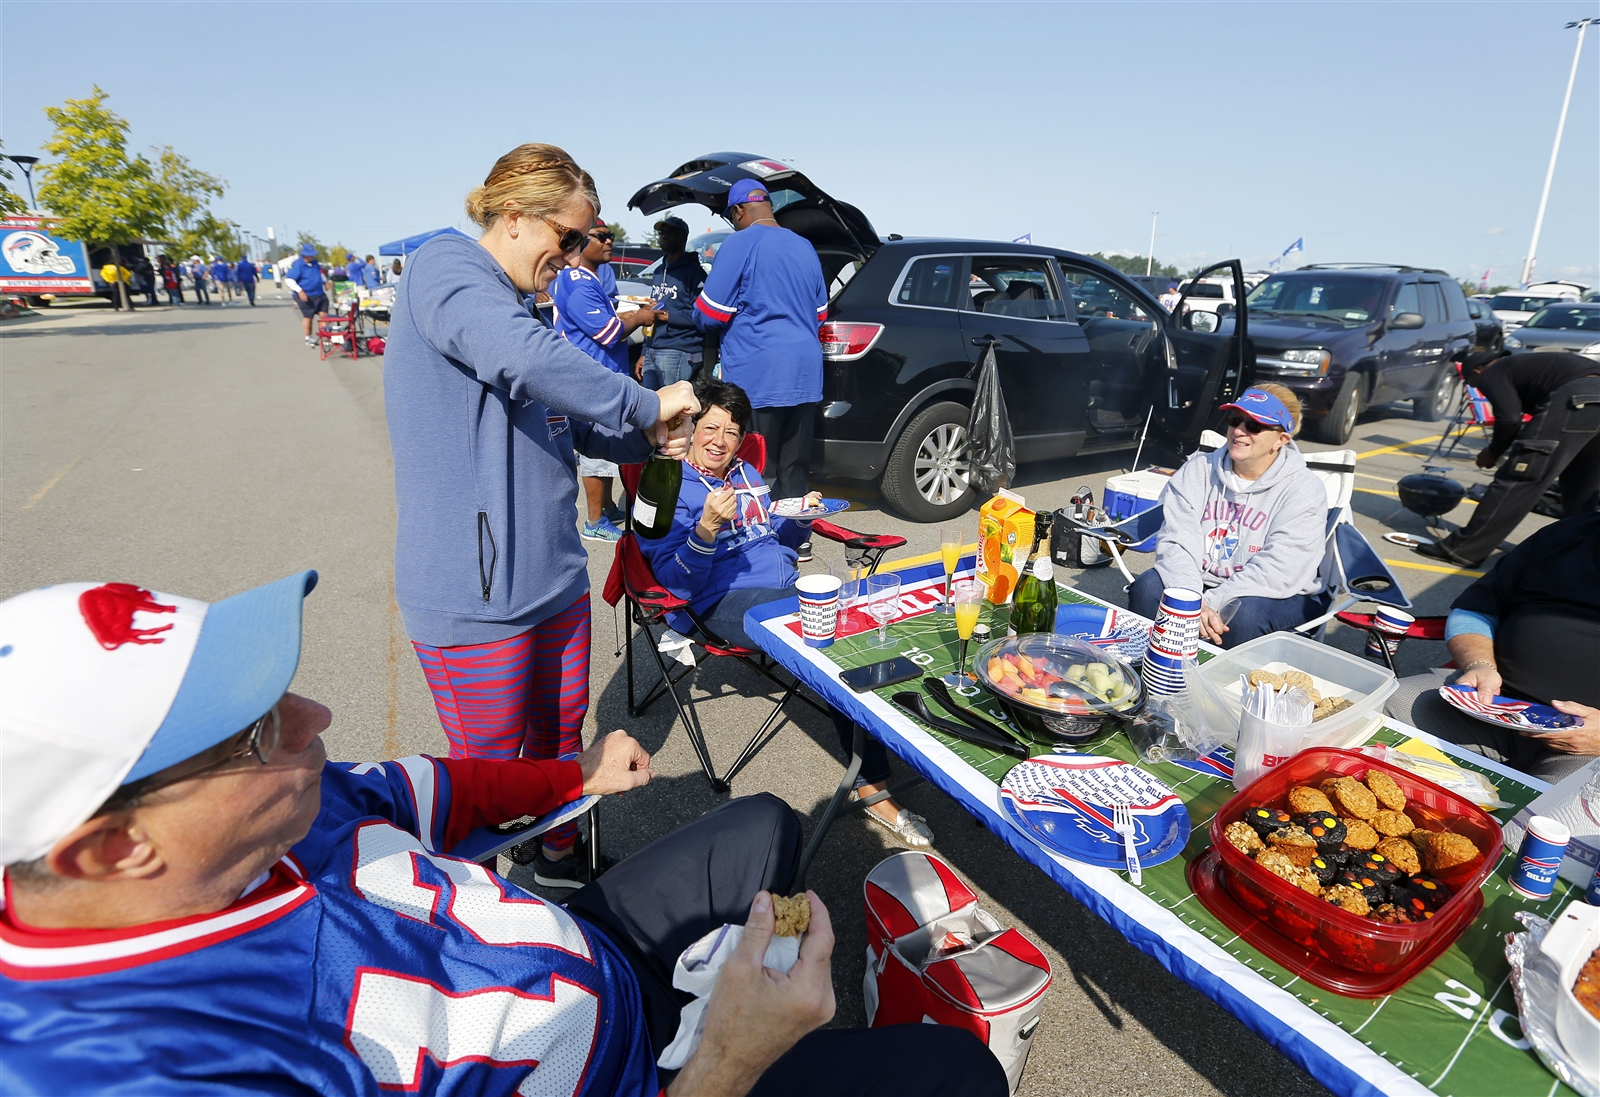 Kristin Cavaretta opens up a bottle of champagne in the parking lot before the game.